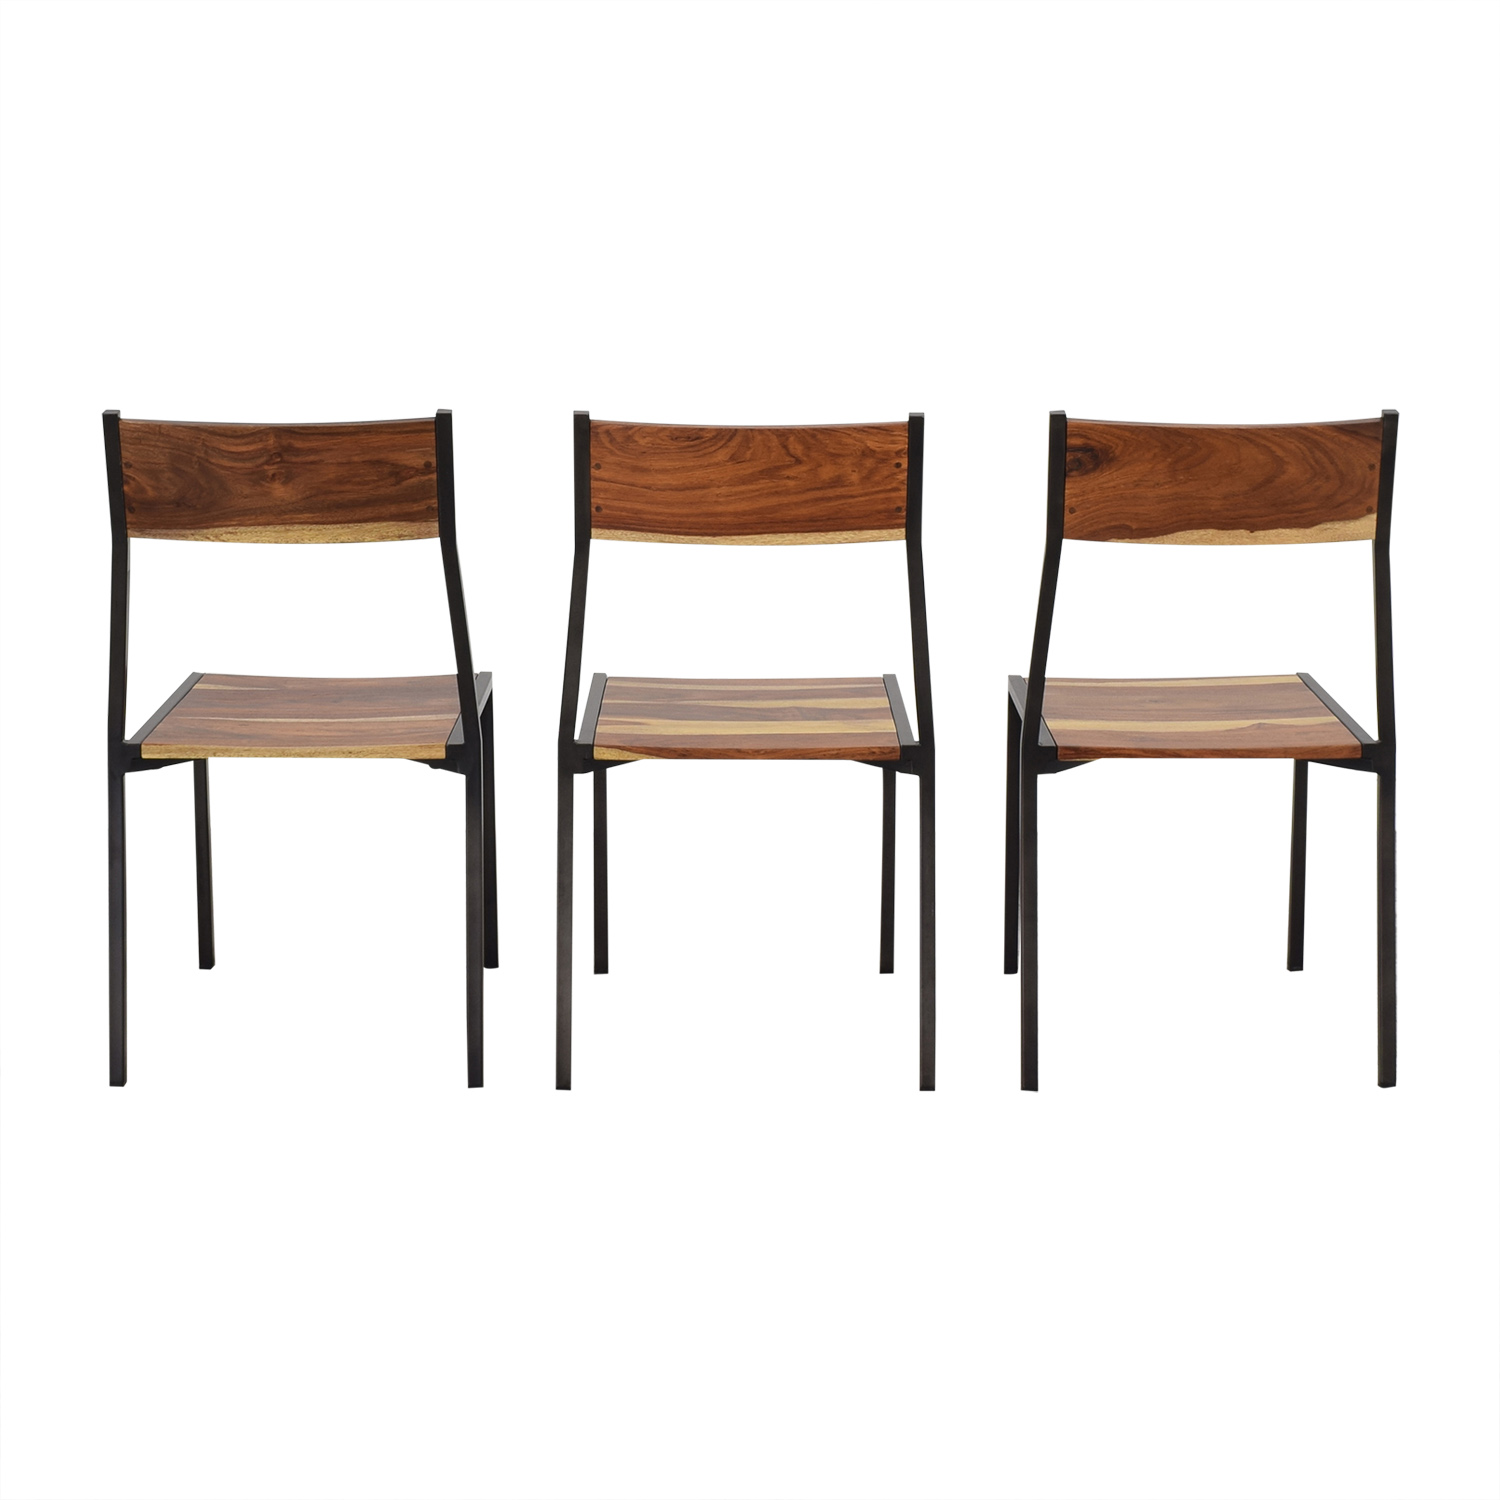 From the Source From the Source Finch Dining Chairs price